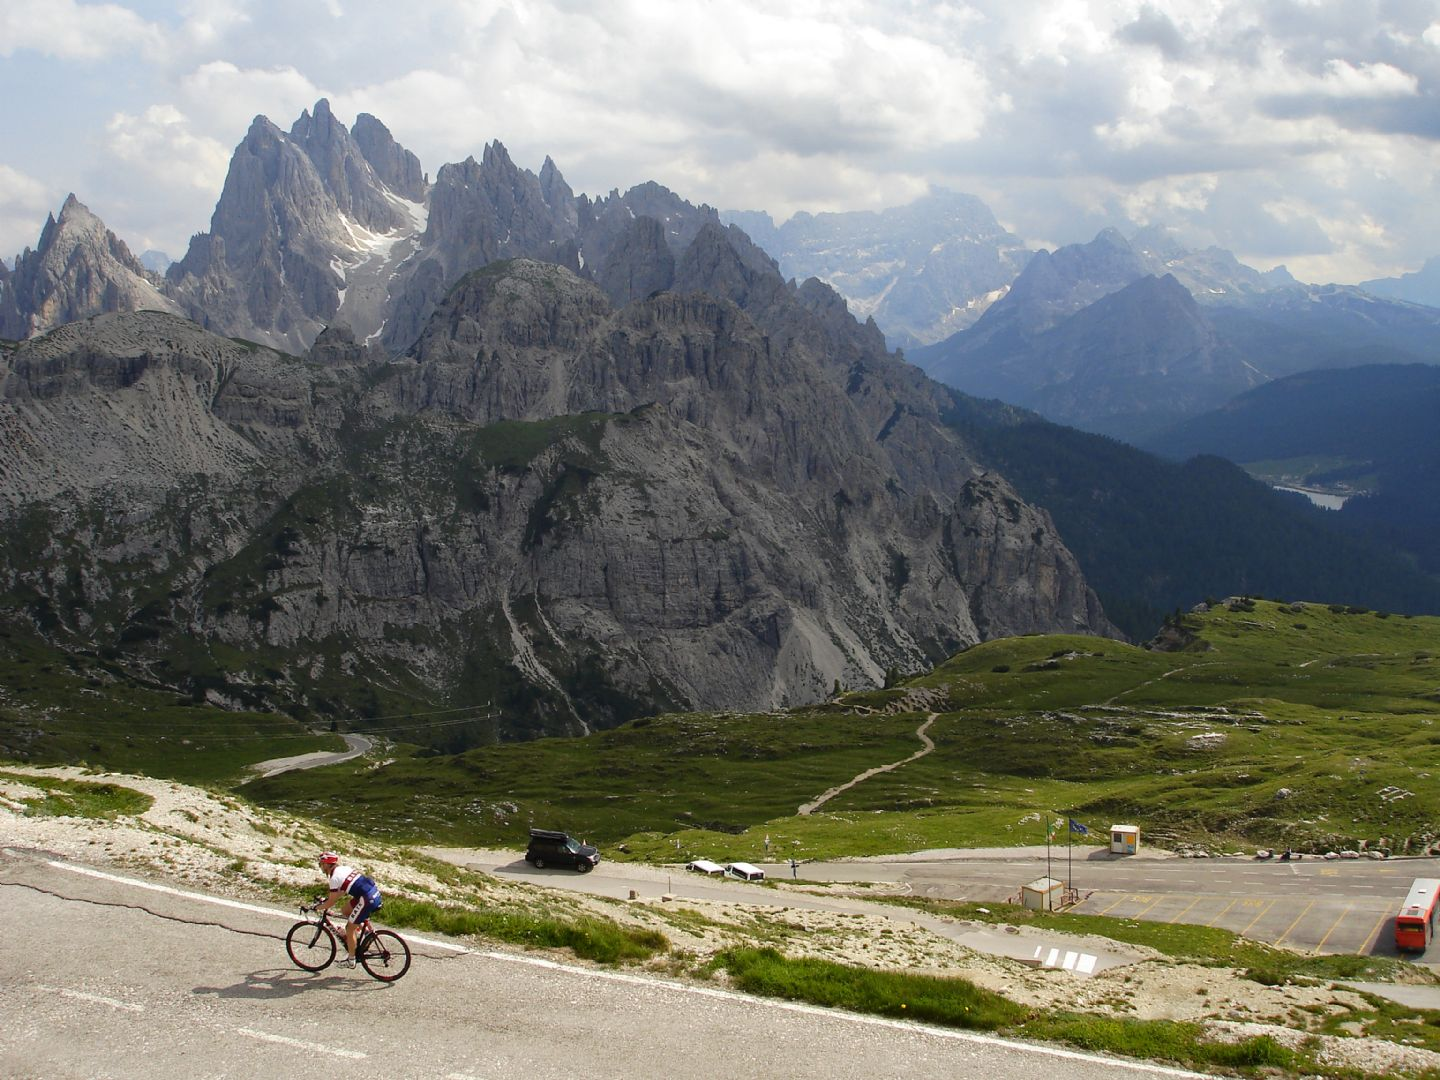 DolomitesRoadCycling68.jpg - Italy - Dolomites and Alps - Italia Road Cycling